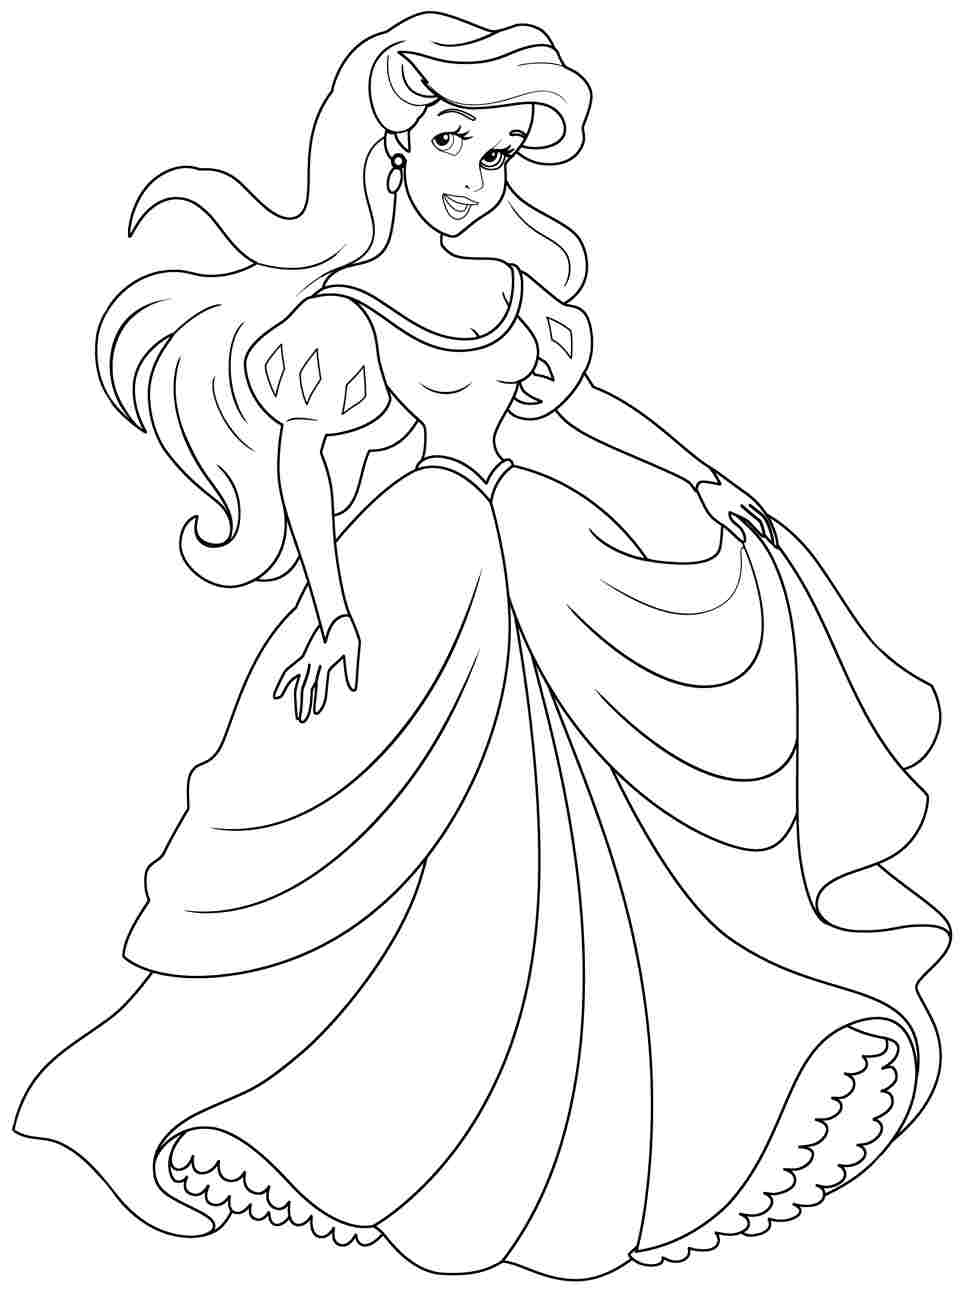 mermaid coloring printable coloring pages - photo#29